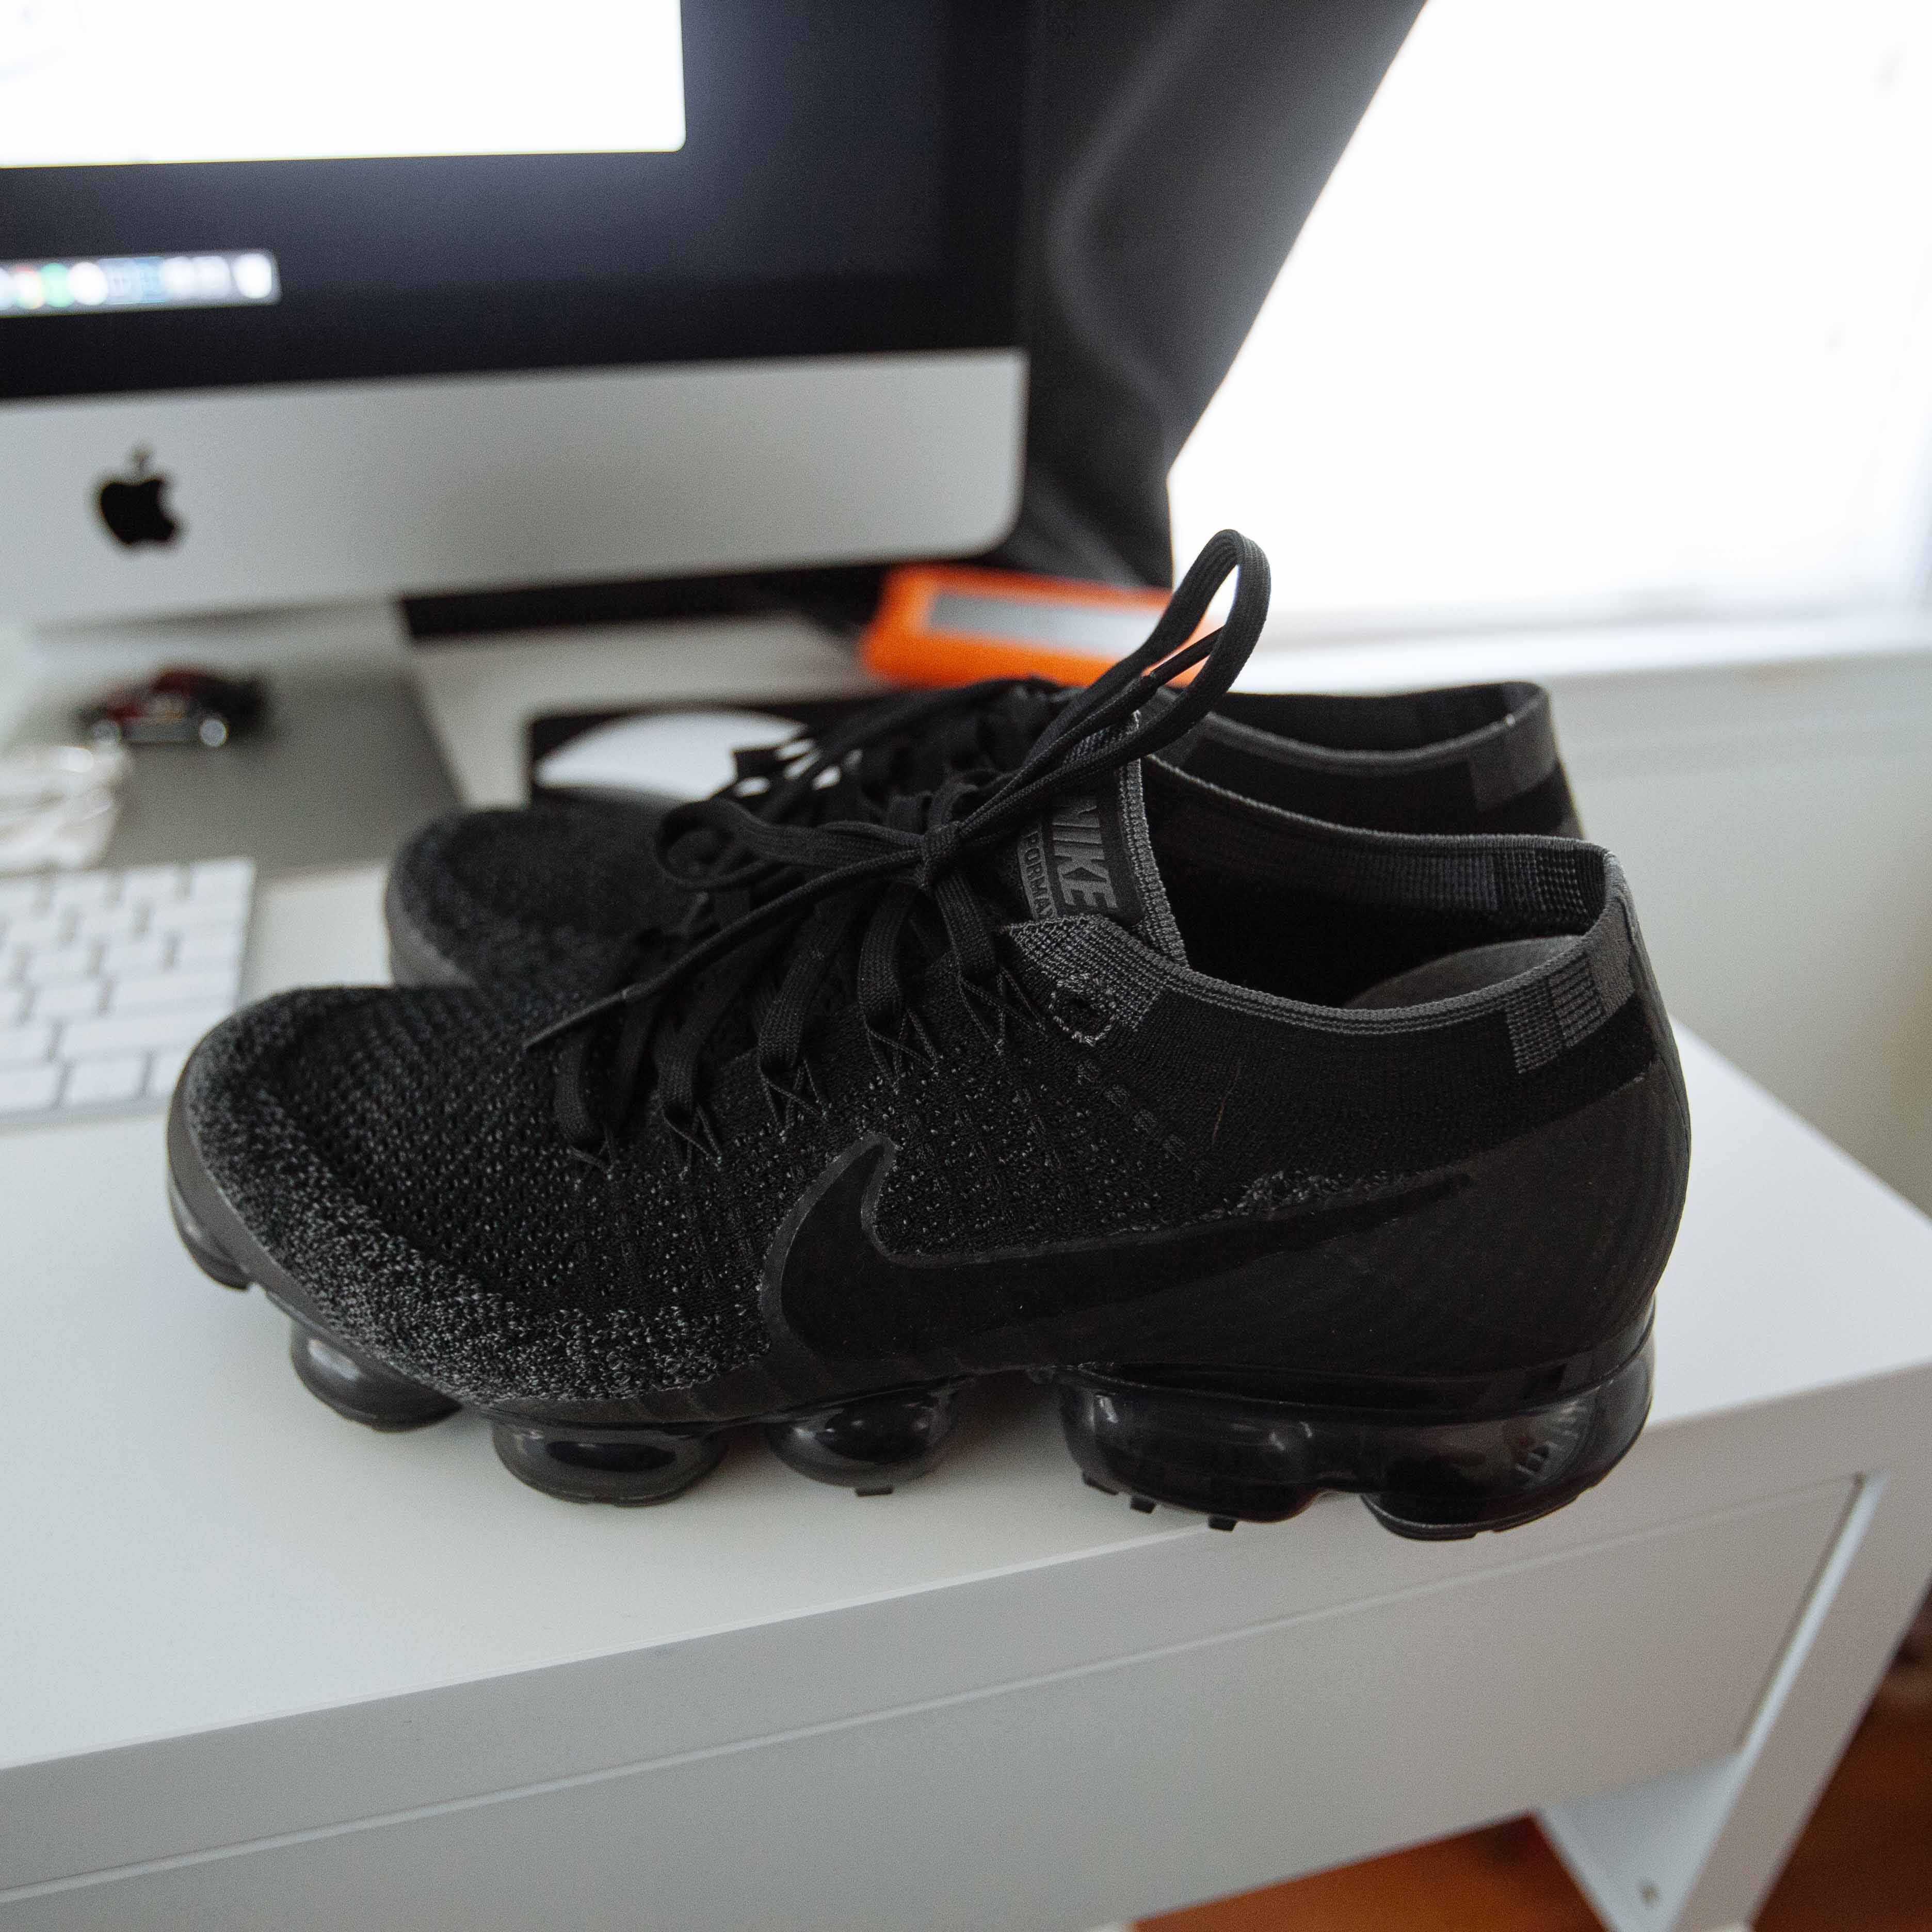 c13f7c1197701 Nike Nike Vapormax Flyknit Size 8 - Low-Top Sneakers for Sale - Grailed